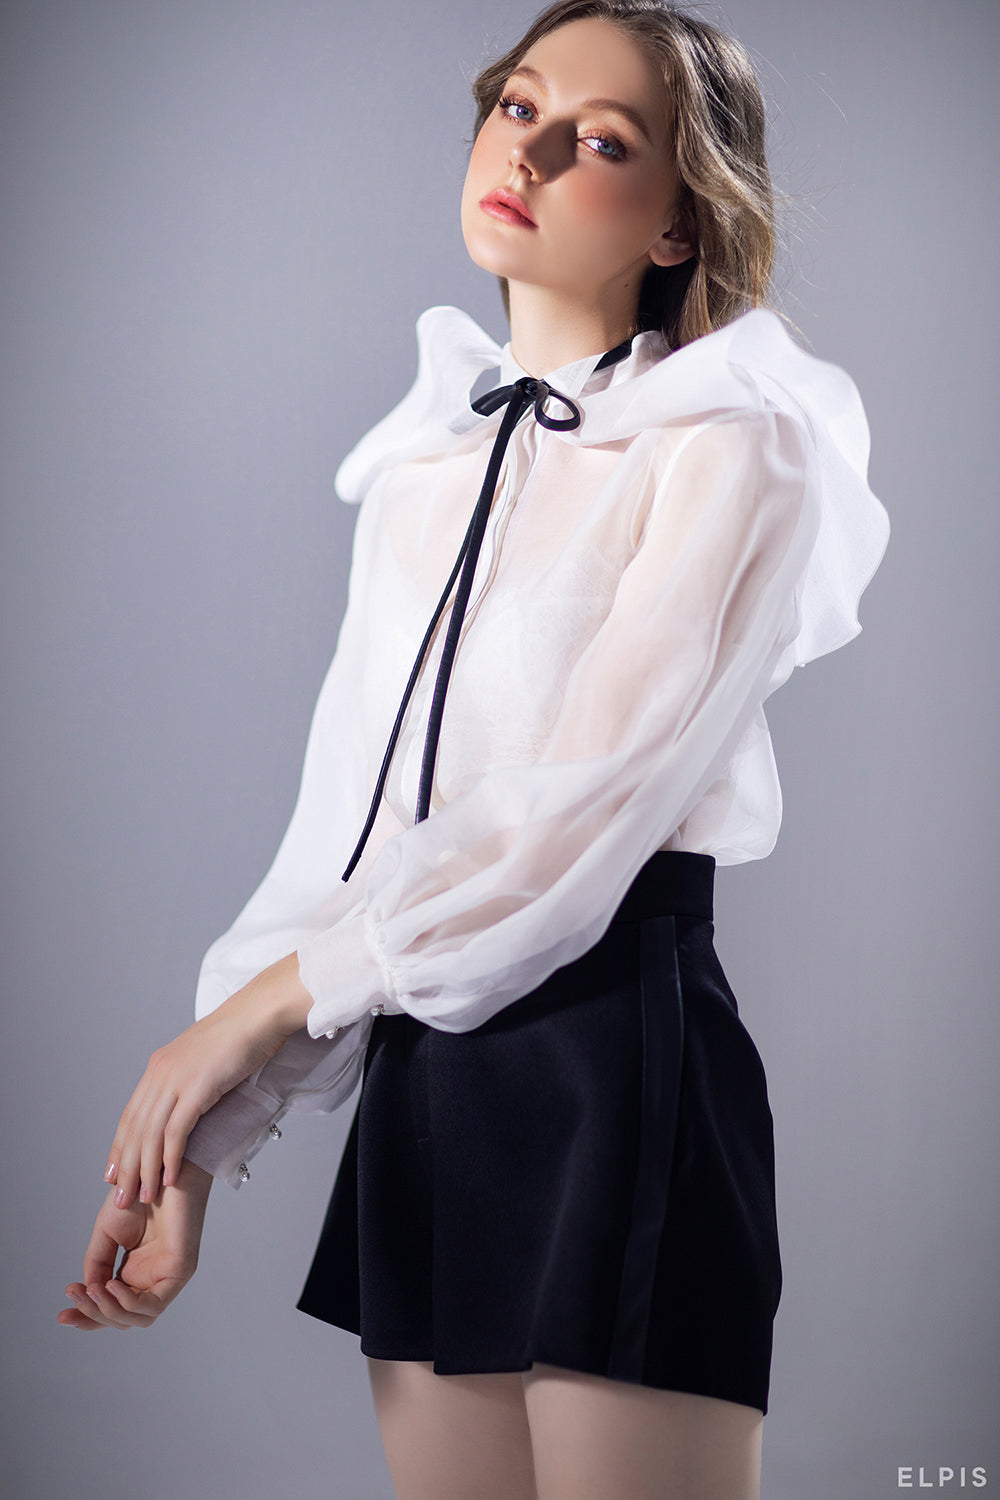 Shirts featuring pierrot, pussy bow collar, bishop sleeves, loop closure cuff | PF20T59